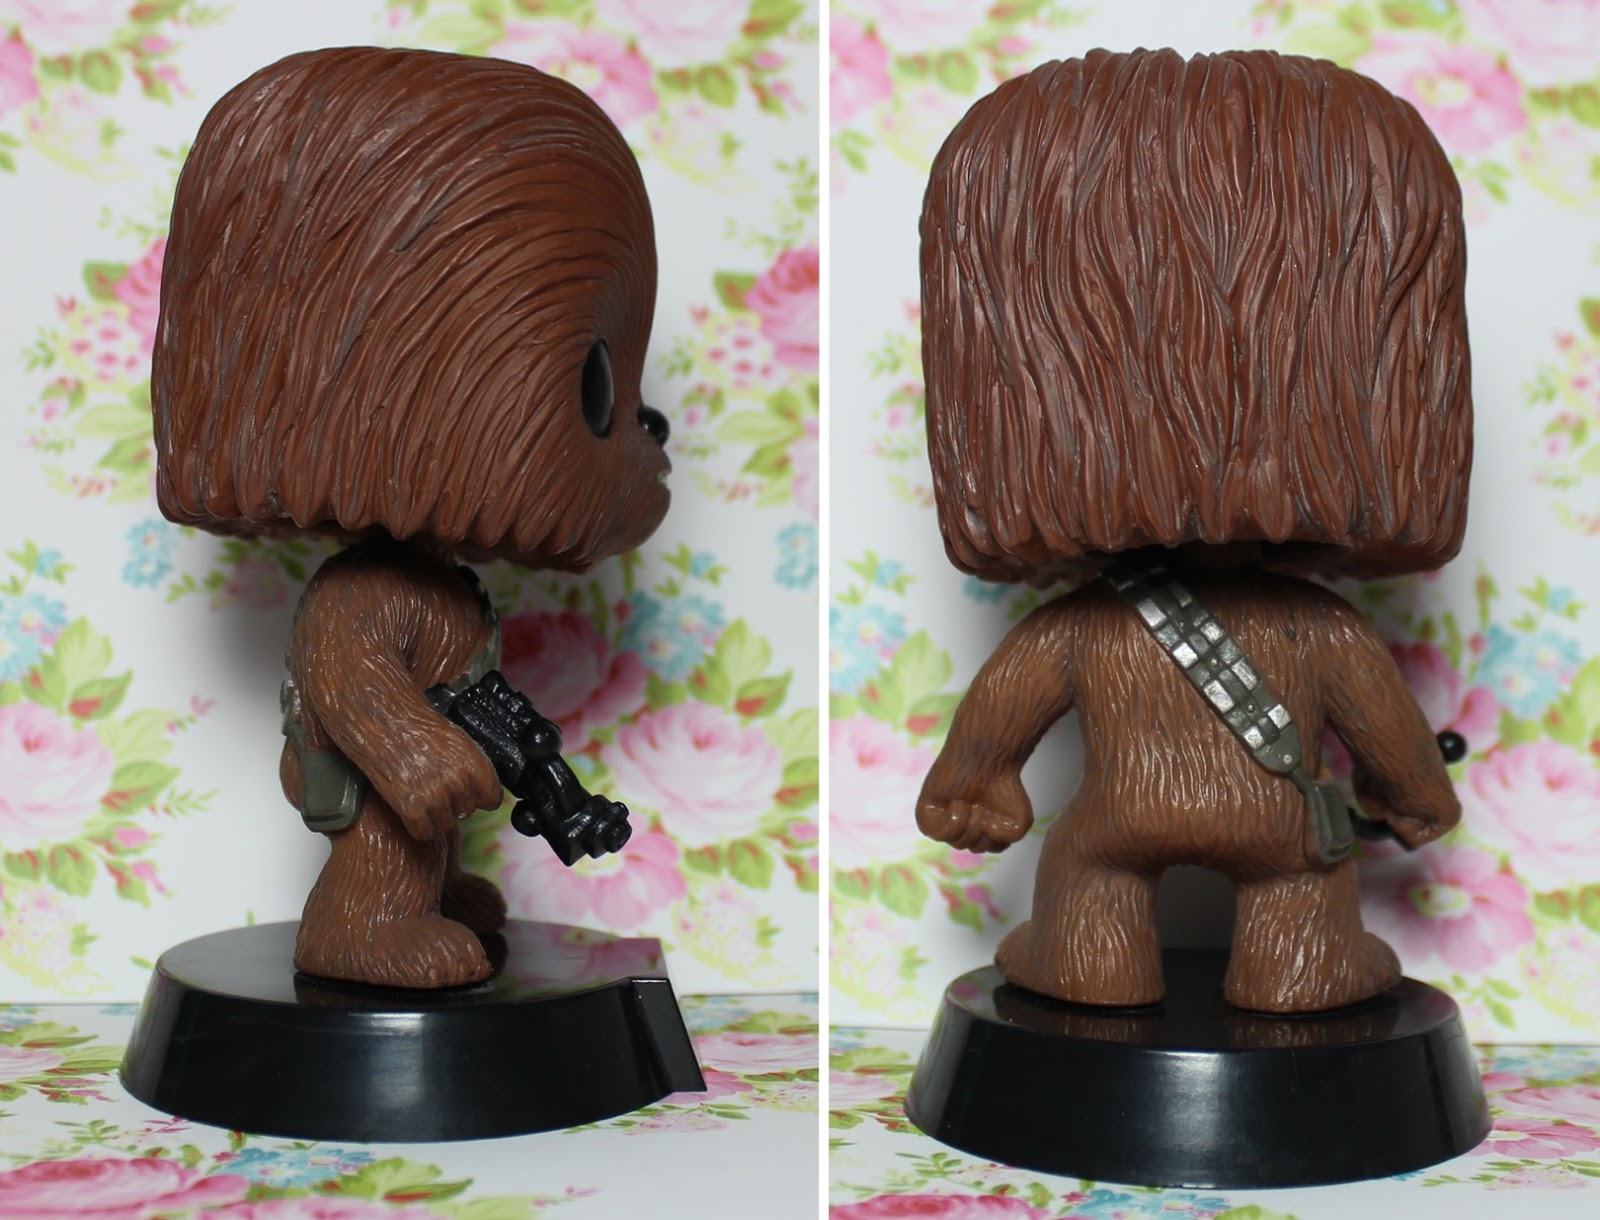 chewbacca funko pop vinyl